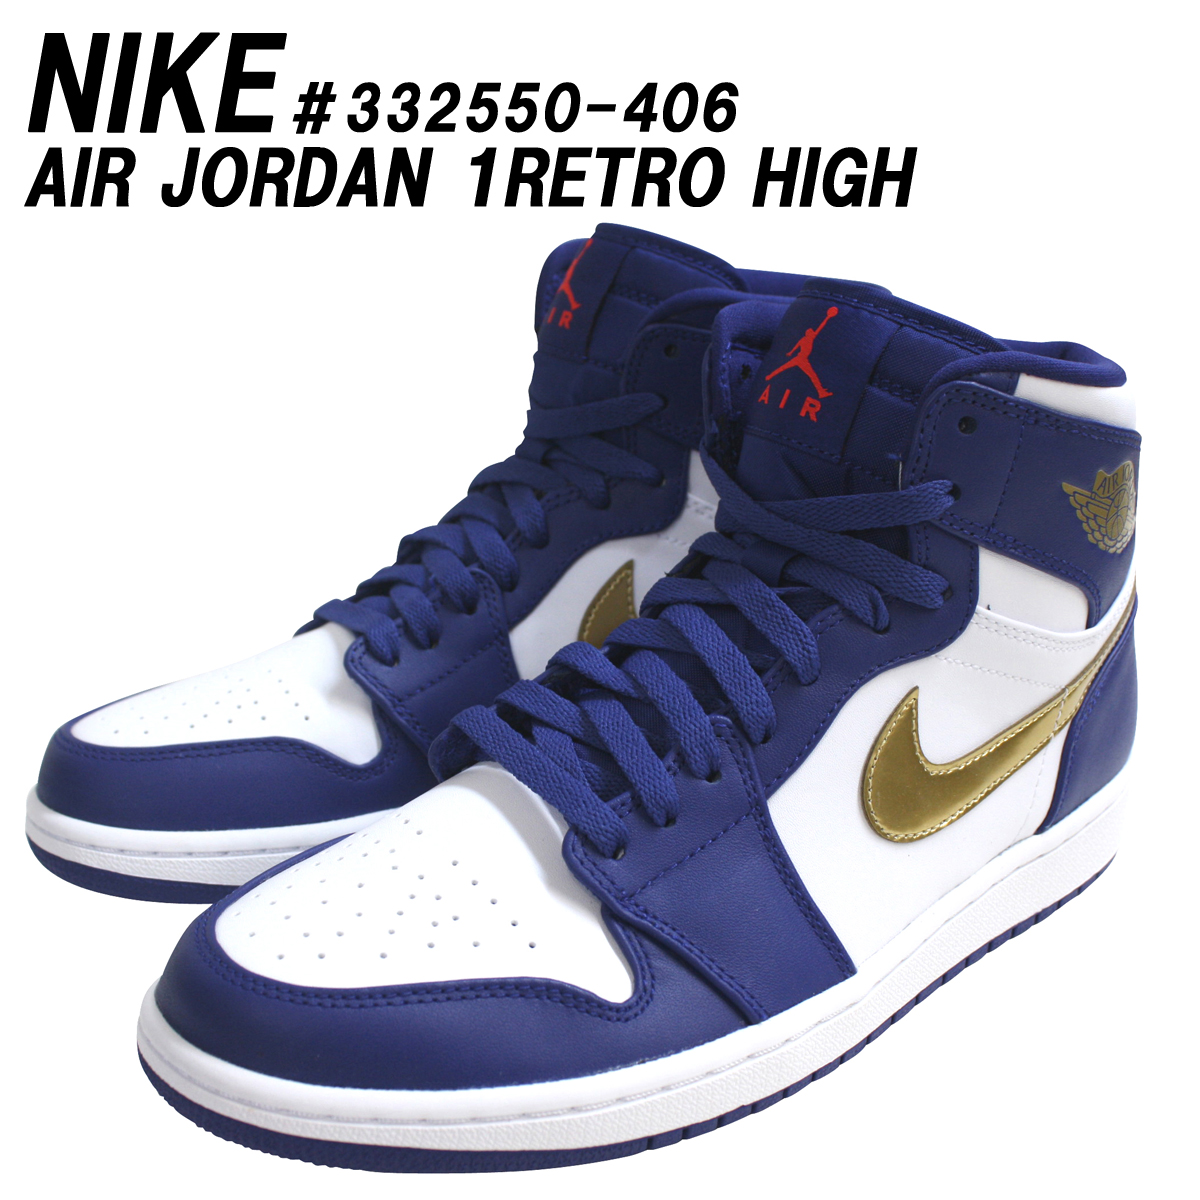 NIKE AIR JORDAN 1 RETRO HIGH Nike Air Jordan 1 retro Hi DEEP ROYAL METALLIC  GOLD WHITE INFRARED 23 color  332550-406 size exchange one way free ☆ 955b979b0